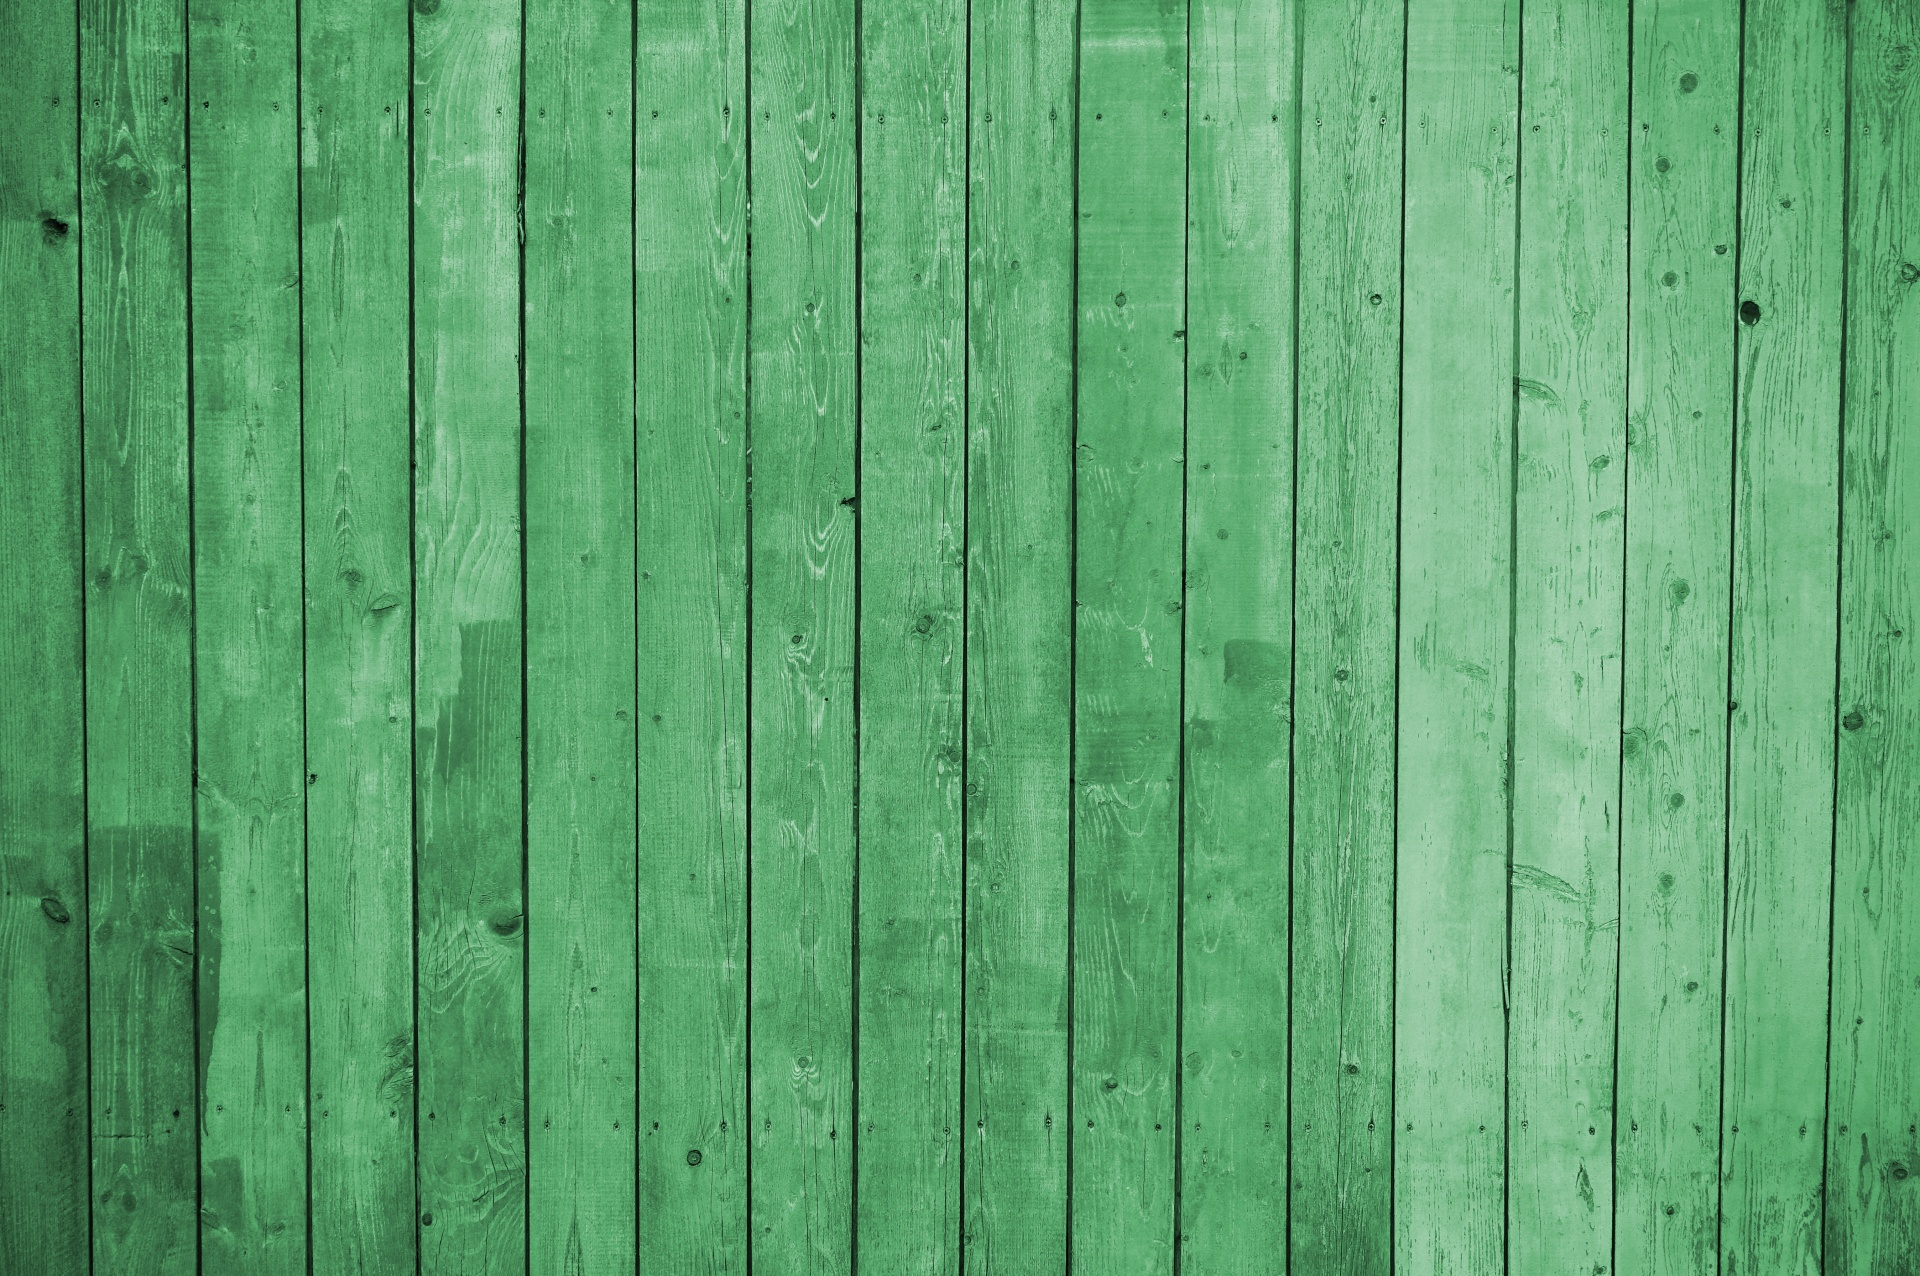 Wallpaper Hd Floral Fence Panels Green Wood Free Stock Photo Public Domain